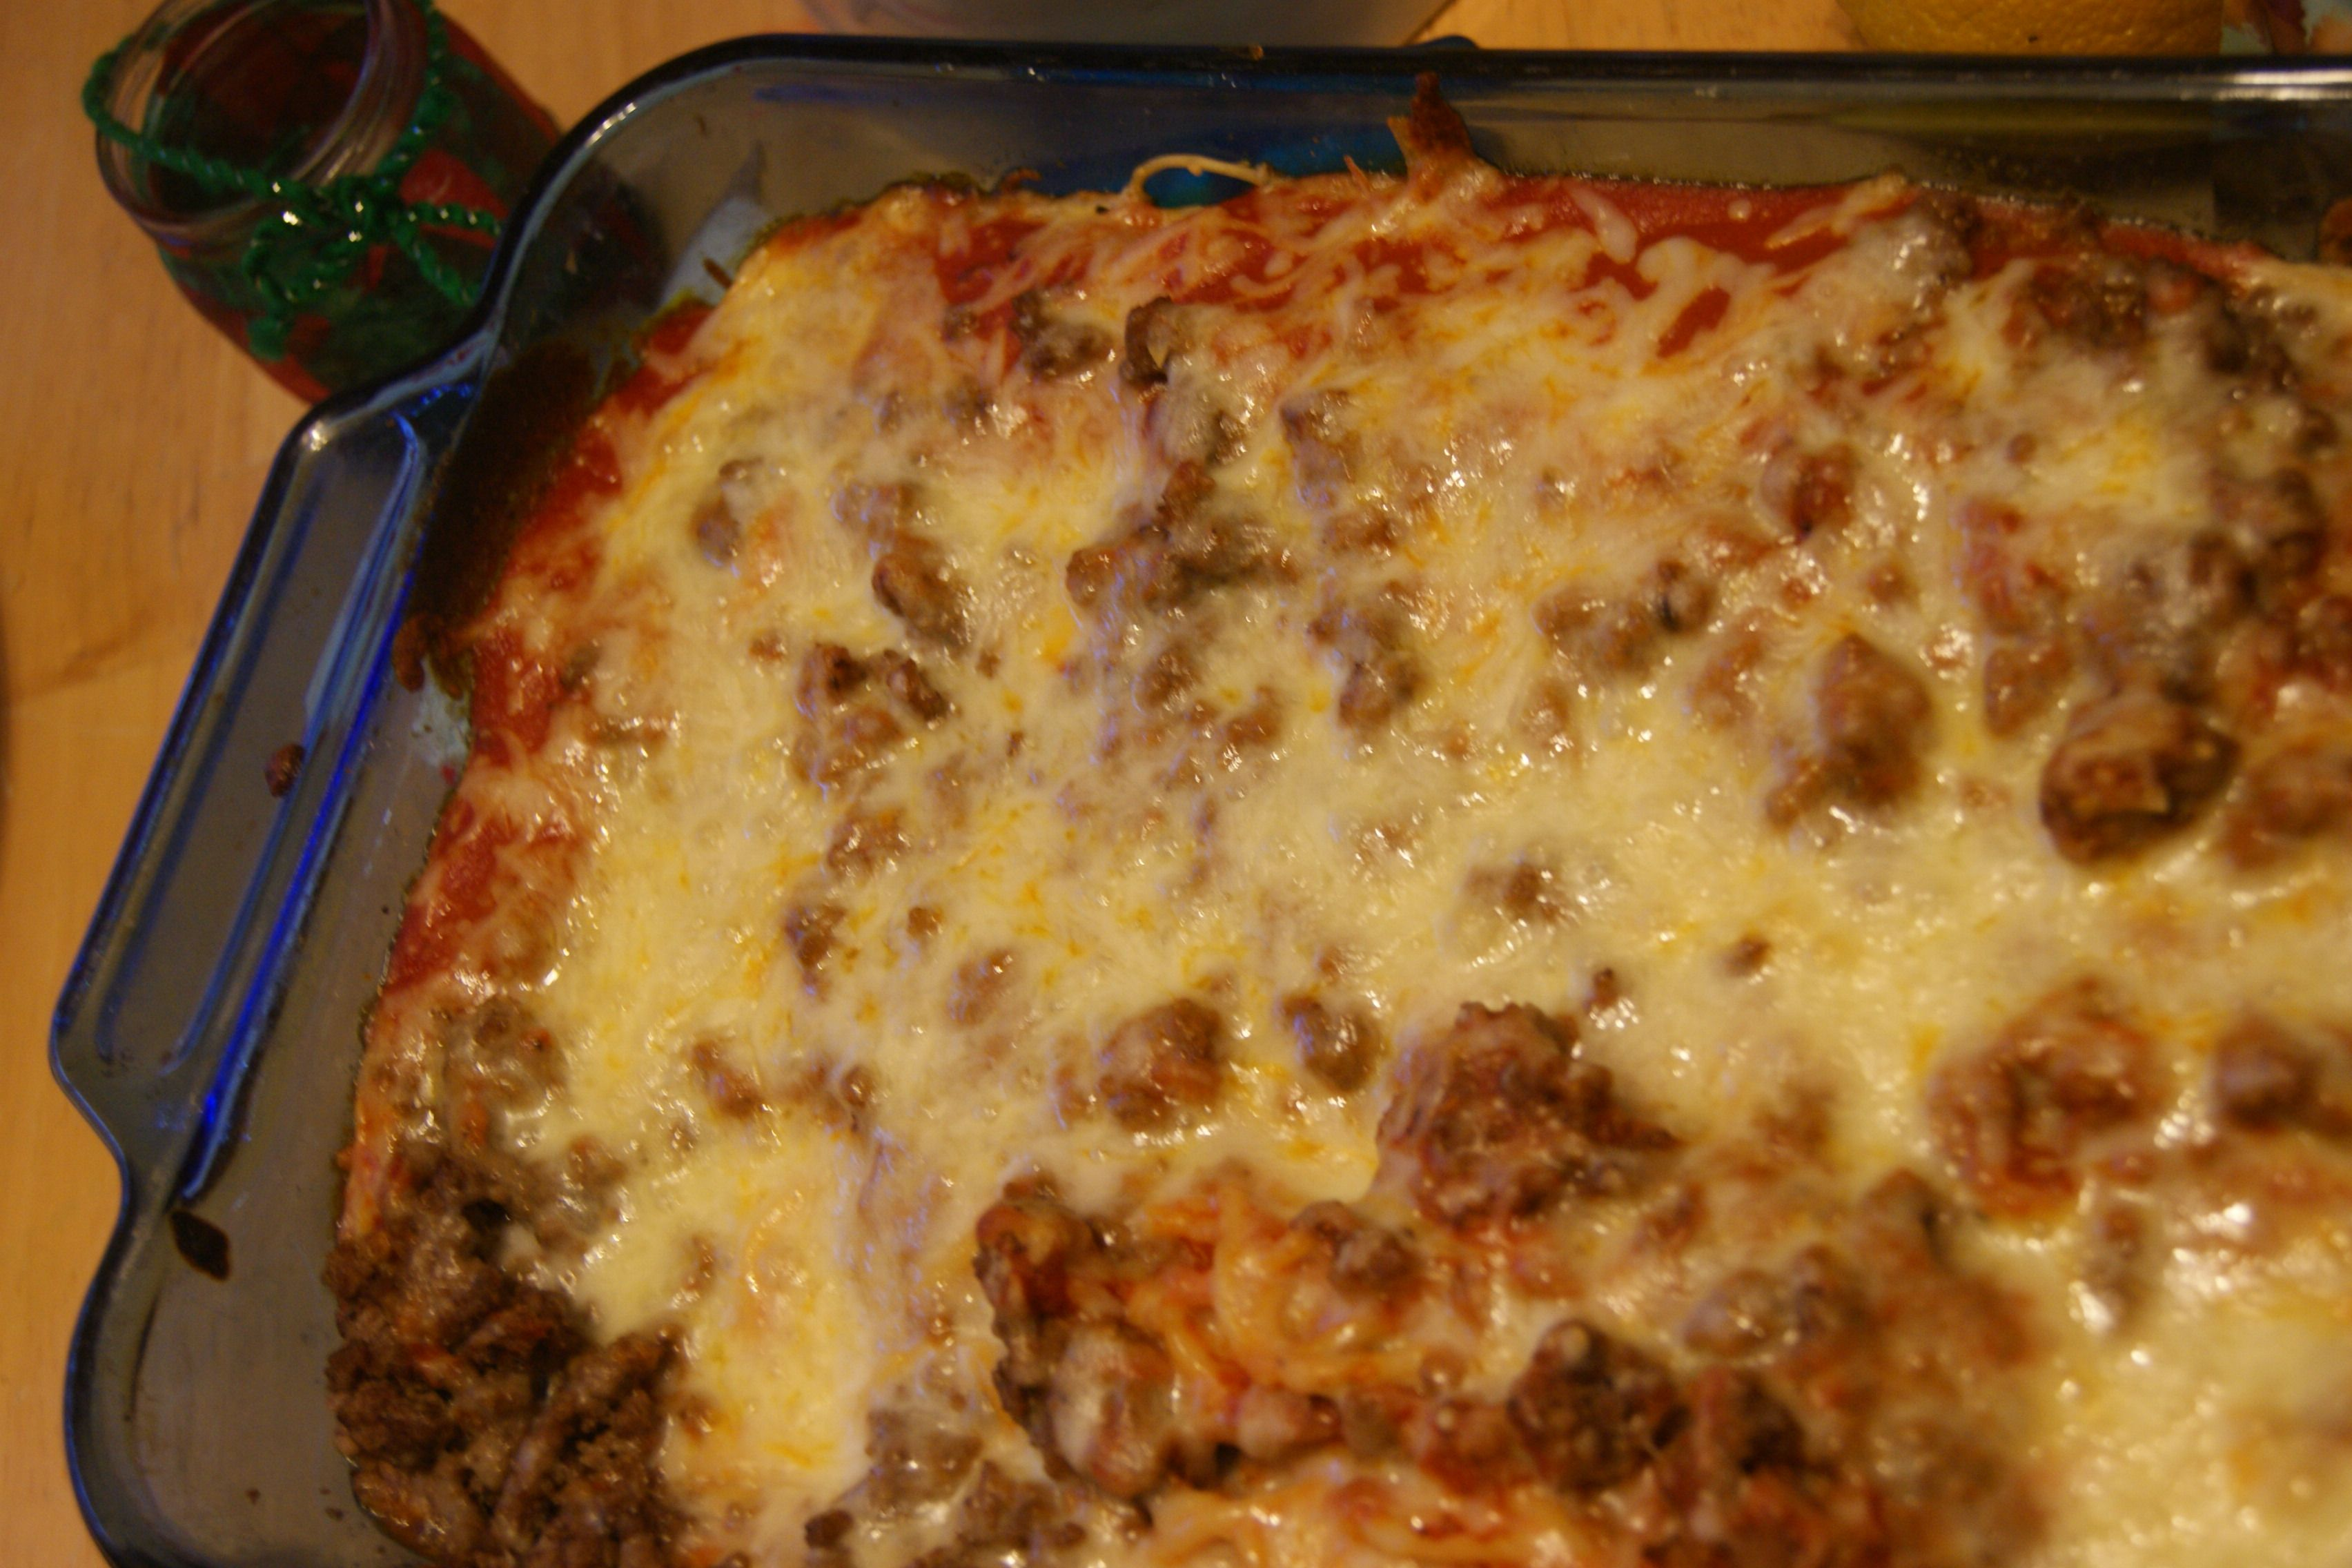 Baked Spaghetti (Easy Meal)